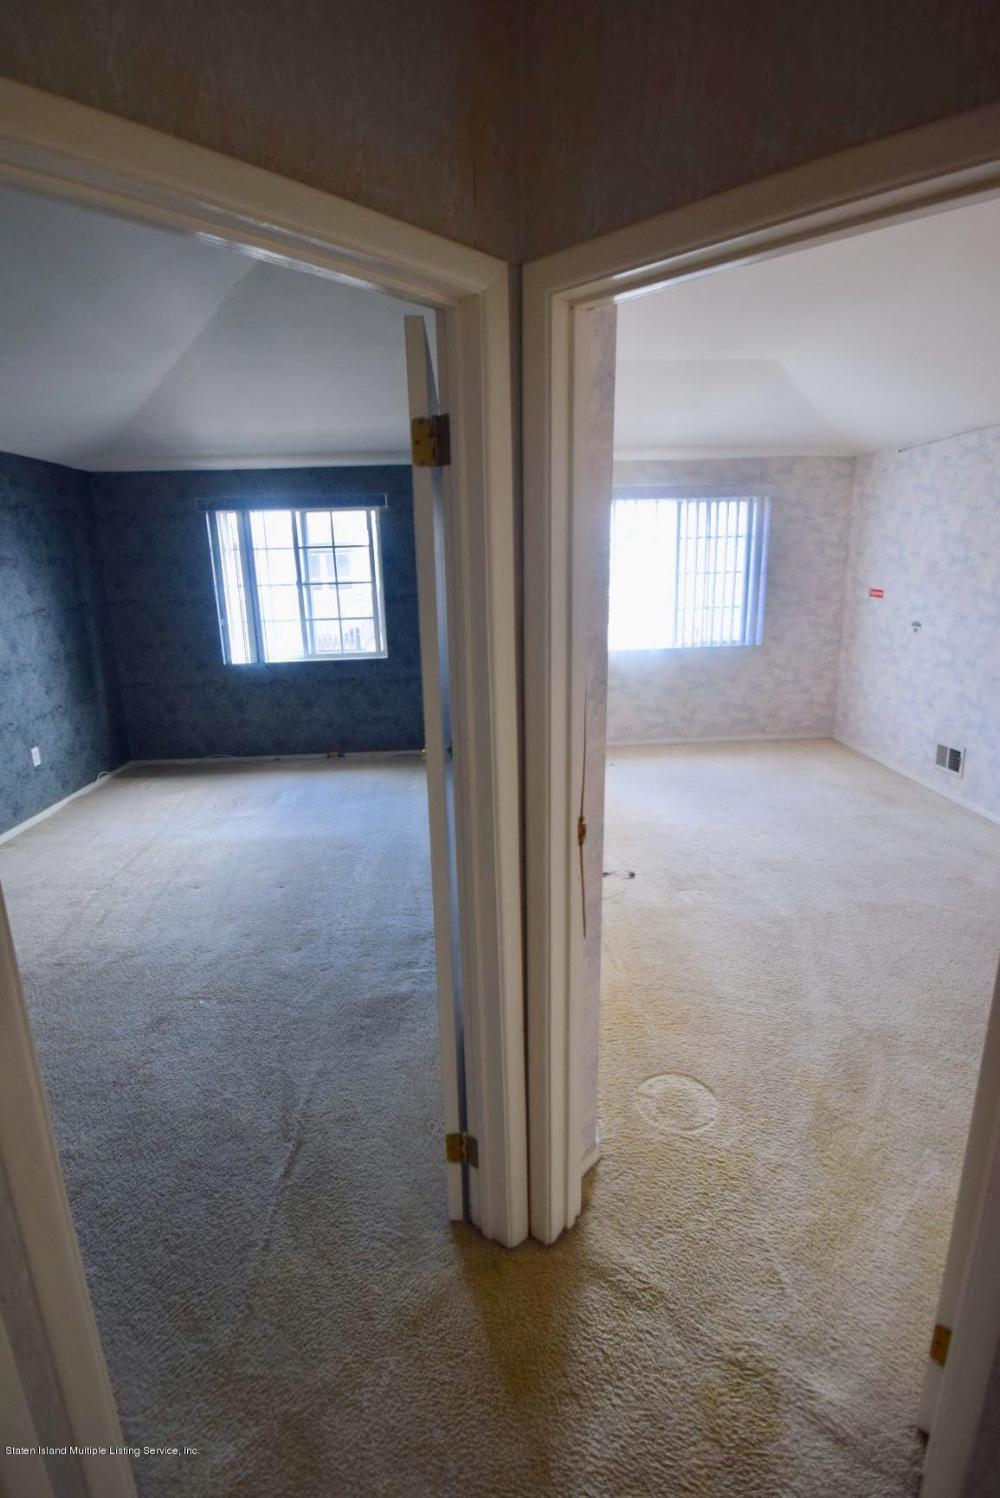 A 61 Country Dr E Staten Island,New York,10314,United States,2 Bedrooms Bedrooms,6 Rooms Rooms,2 BathroomsBathrooms,Residential,Country Dr E,1123606